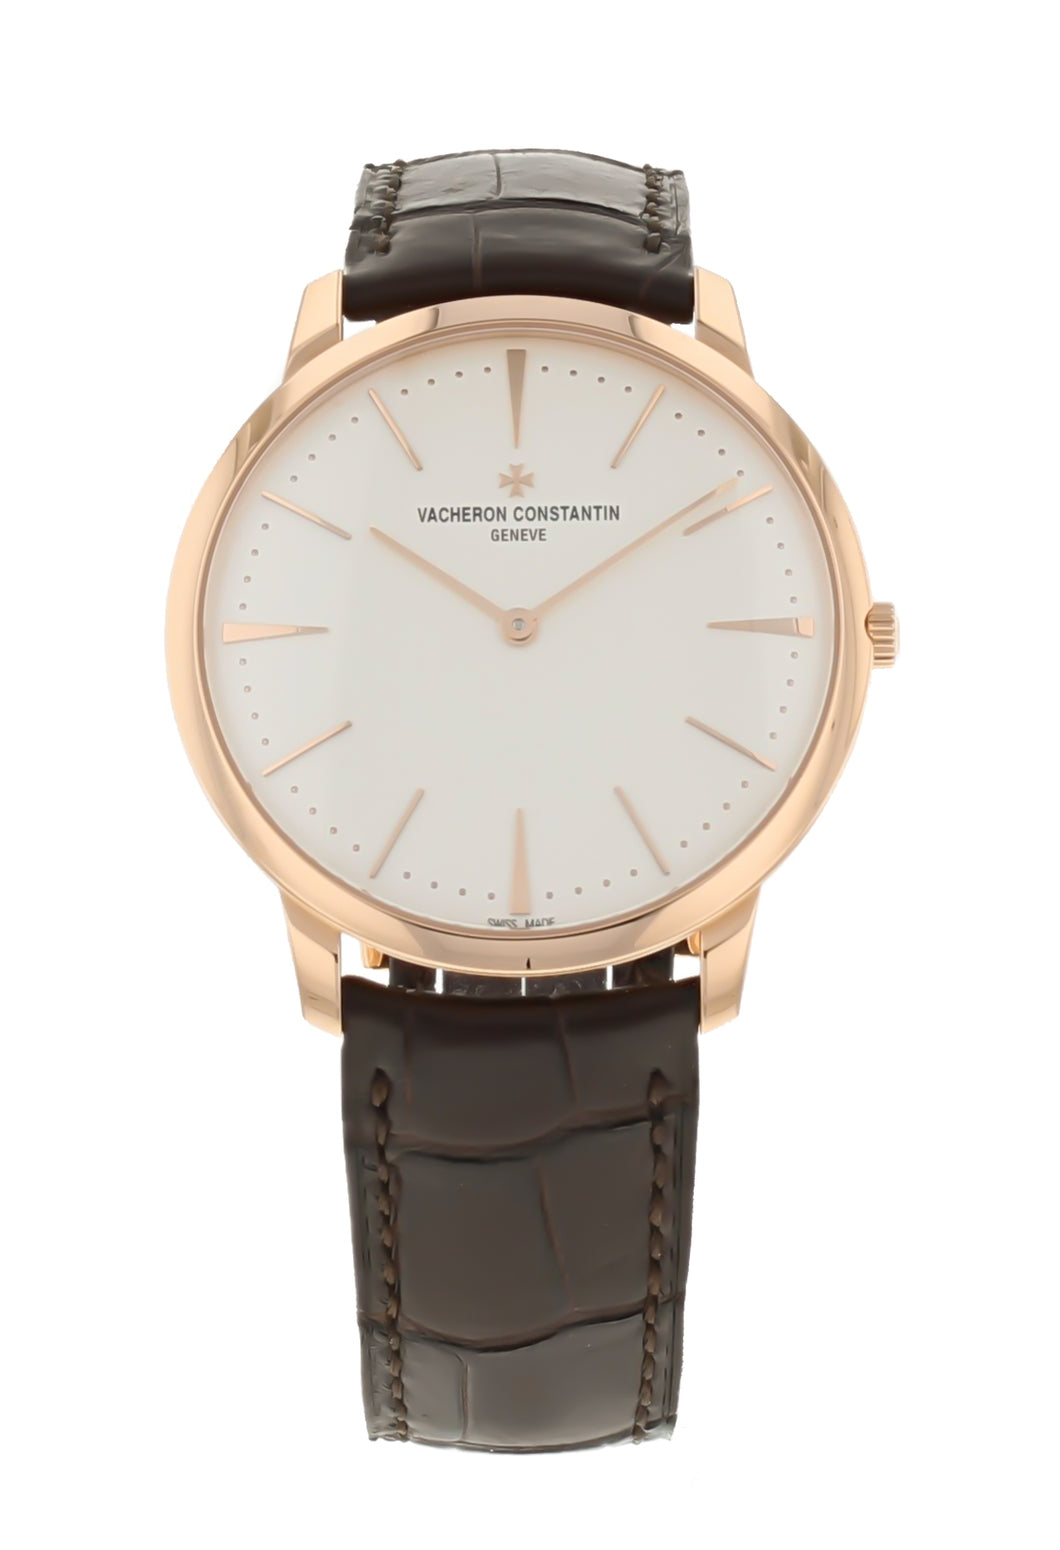 Vacheron Constantin Patrimony Grand Taille 40mm Men's Watch 81180/000R-9159